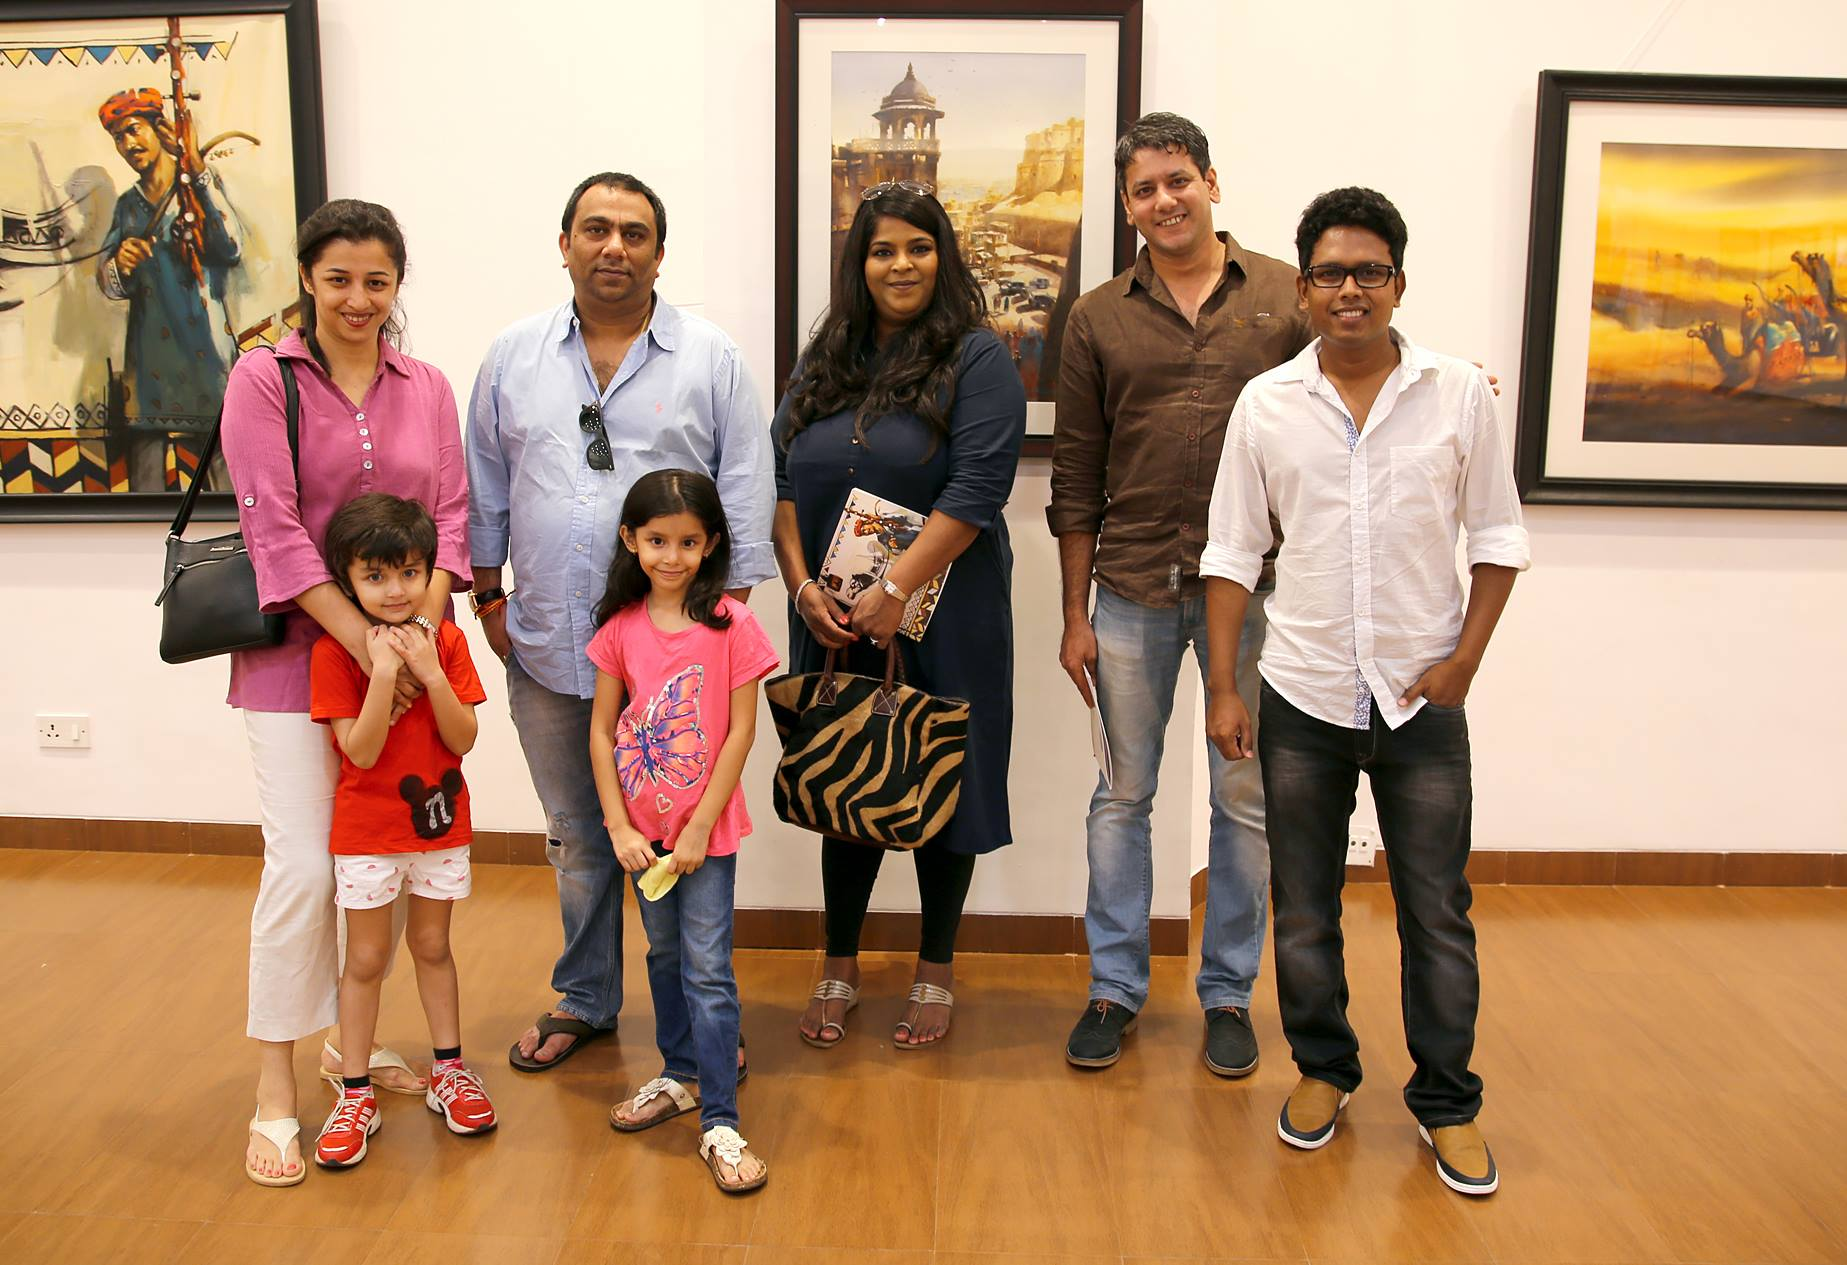 ananta-mandal-exhibition-rajasthan-the-color-ecstasy-1